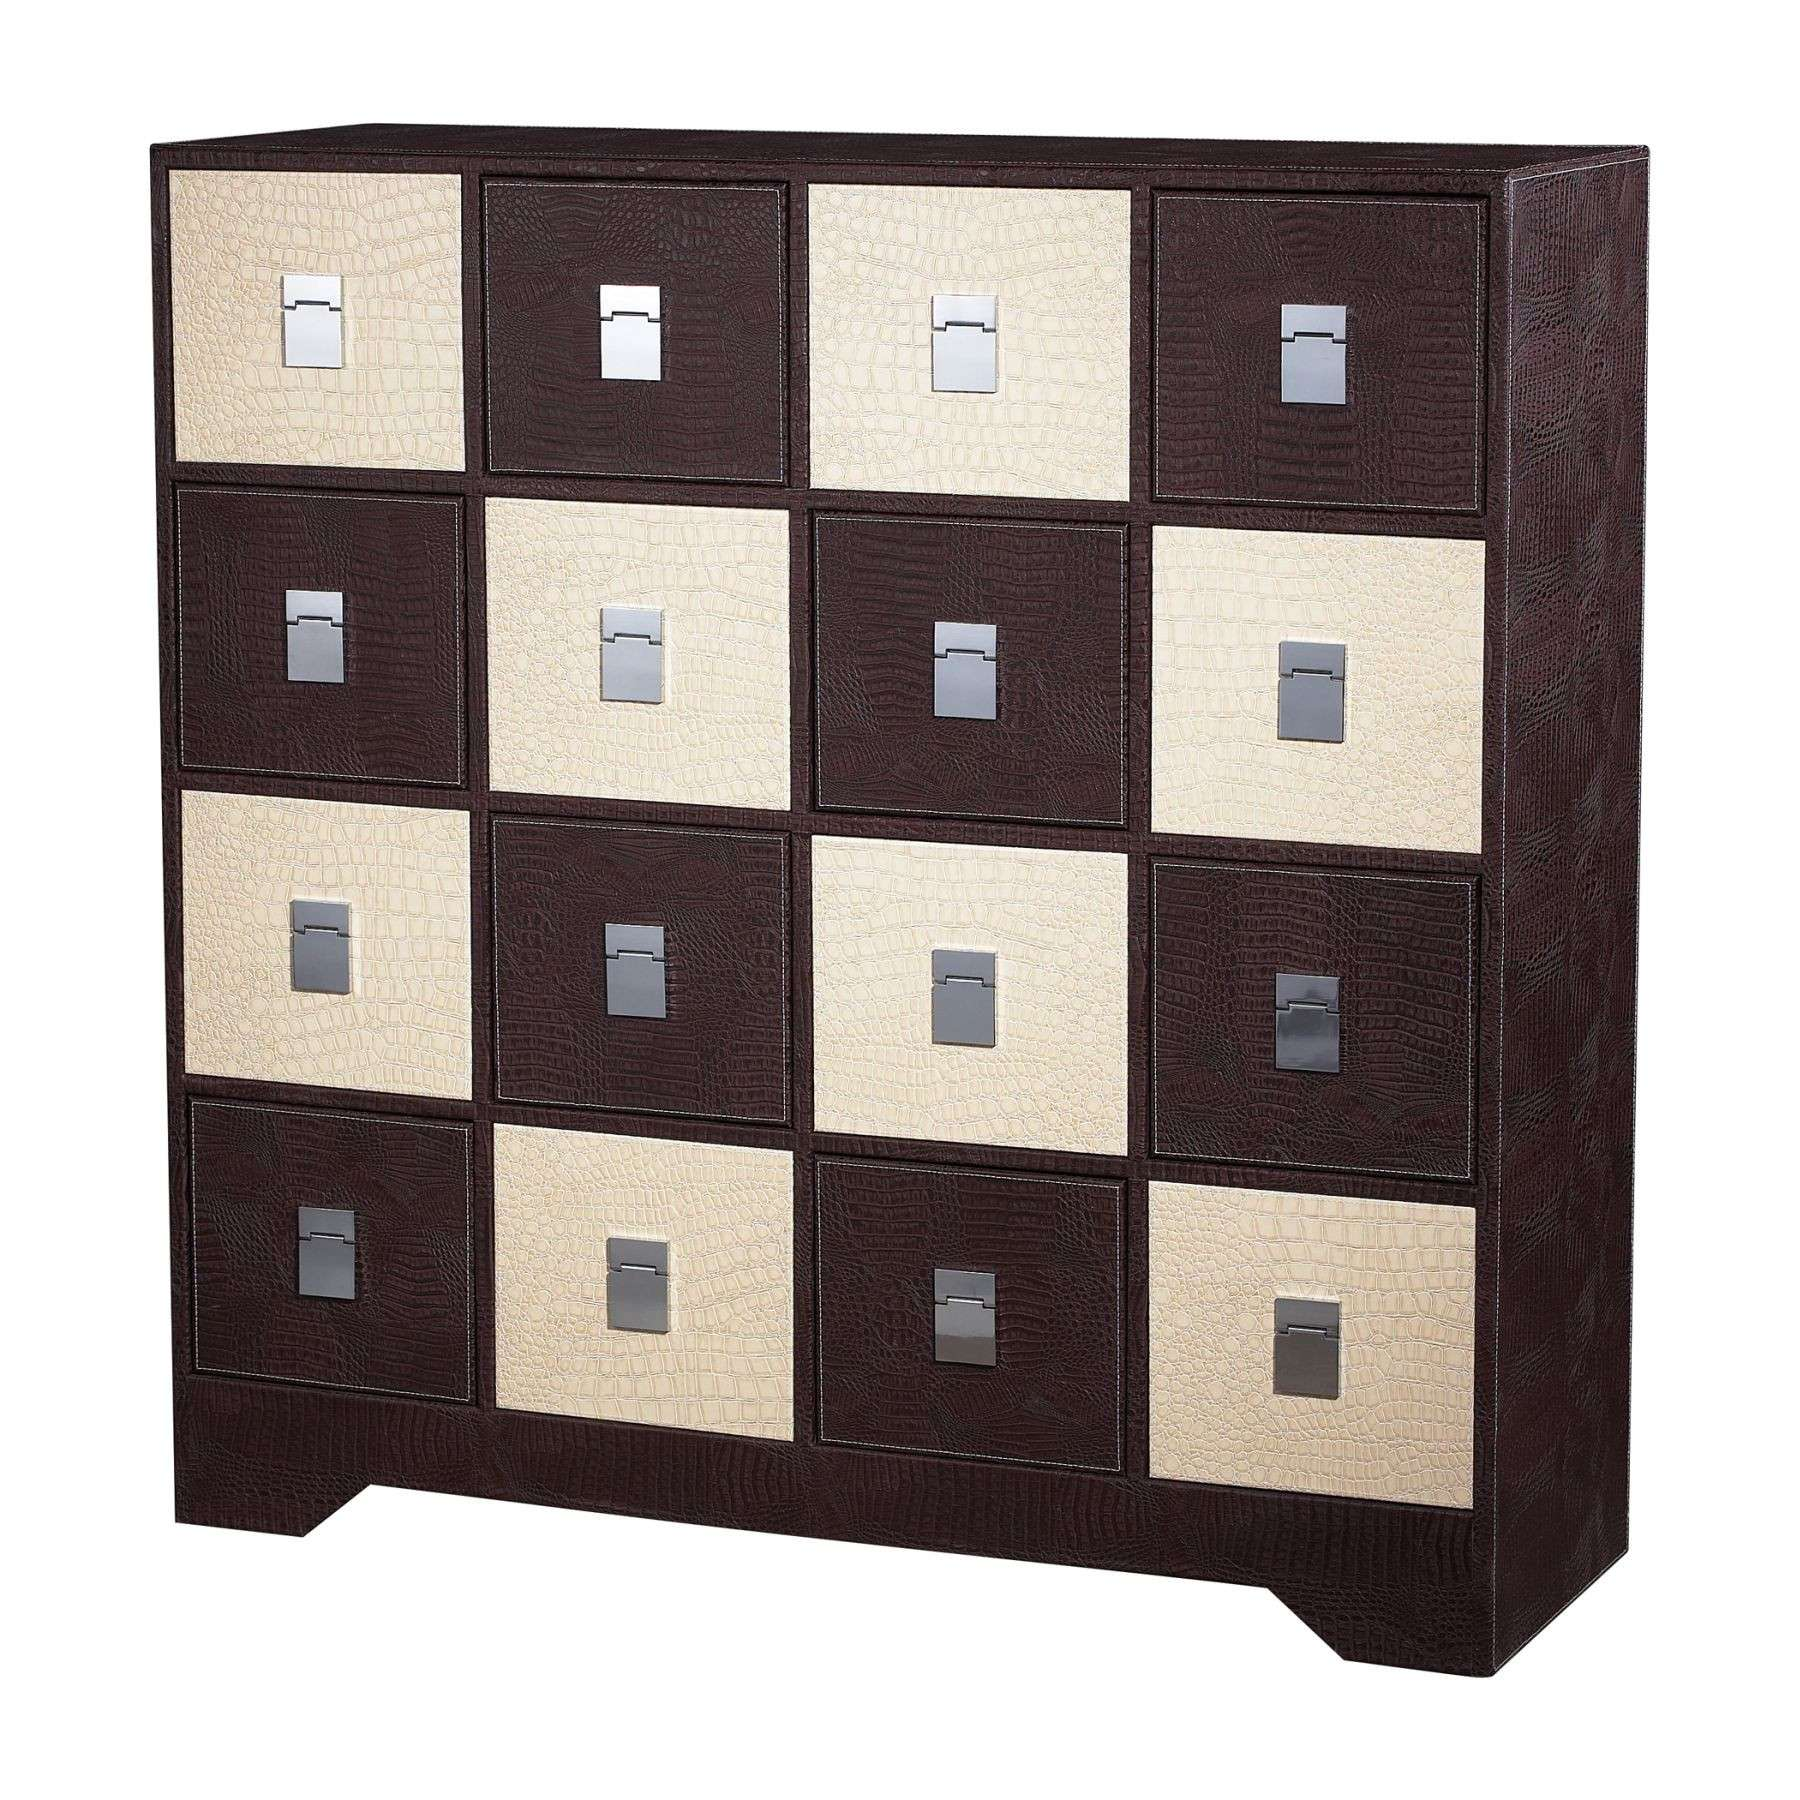 Sterling Furnishings 120-005 Choc / Cream Croc Multi Chest